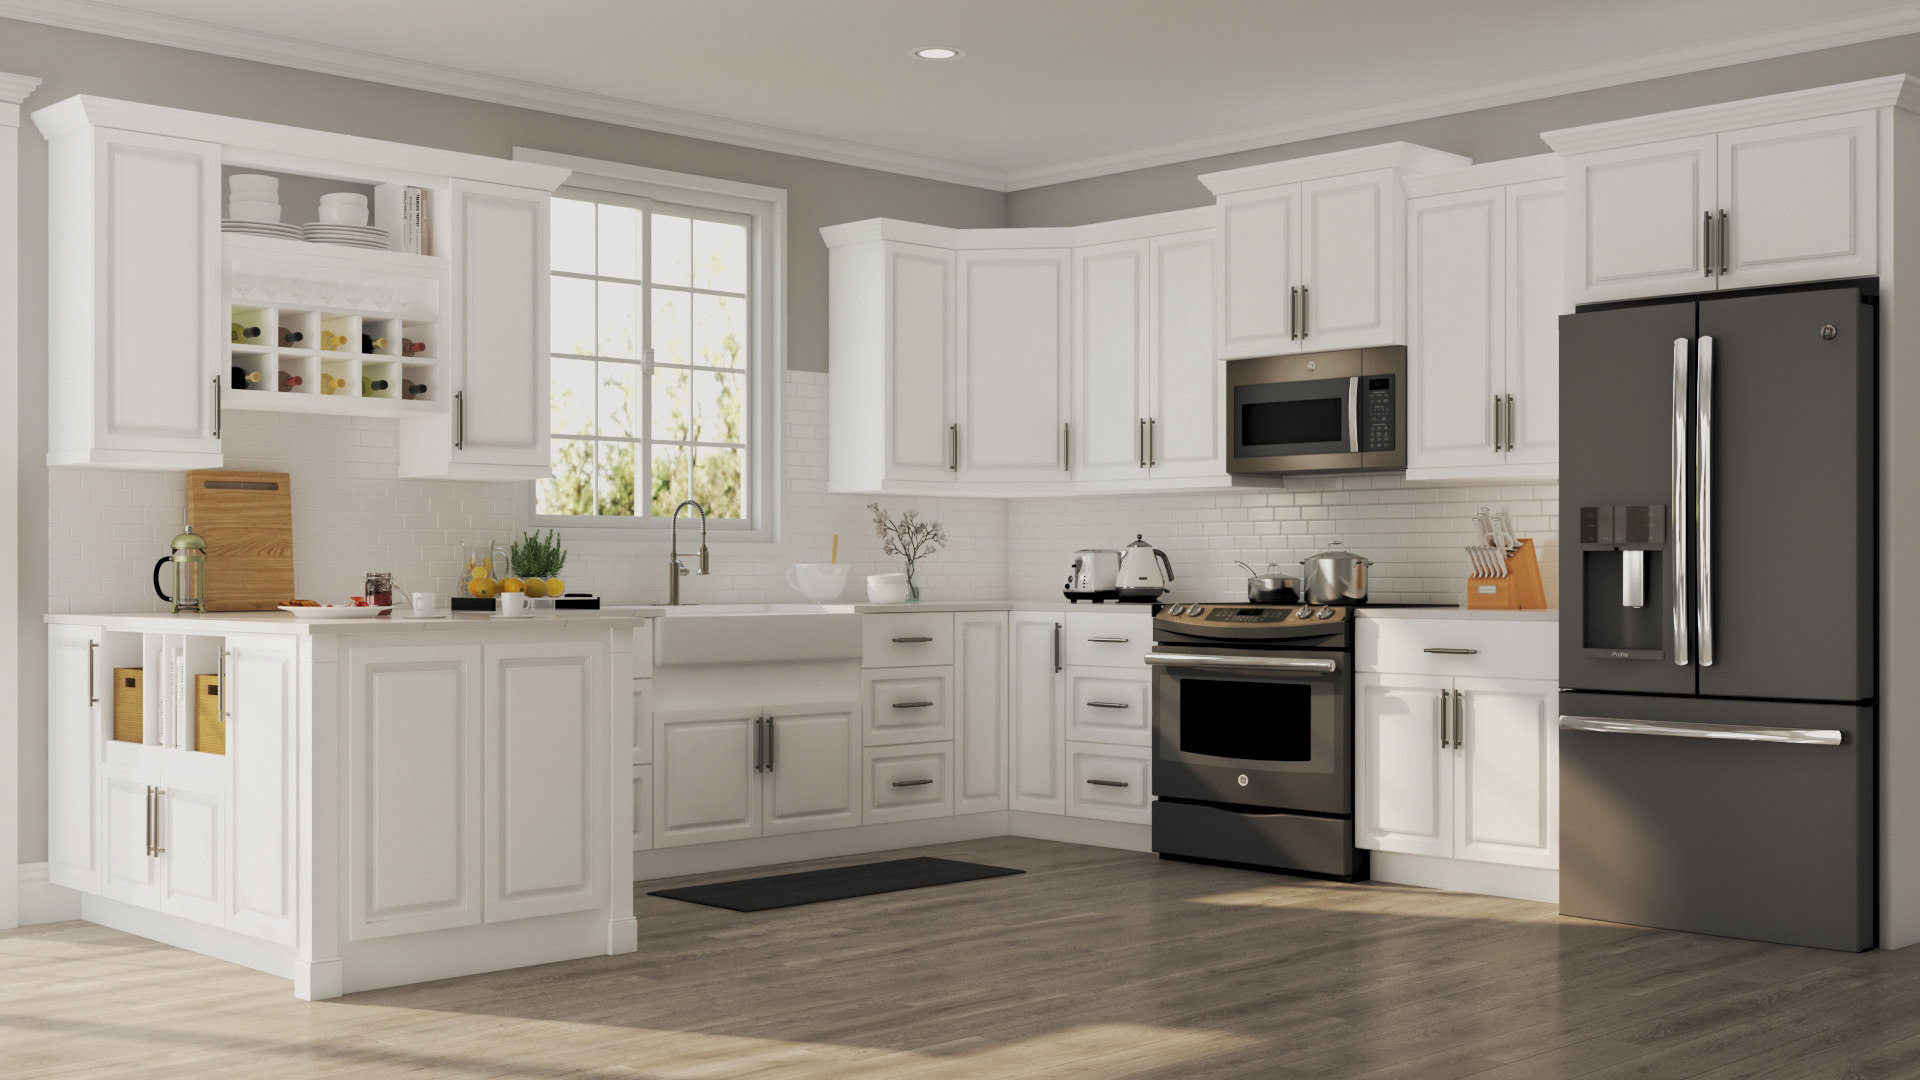 Kitchen Design Layout Graph Paper Hampton Specialty Cabinets In White Kitchen The Home Depot